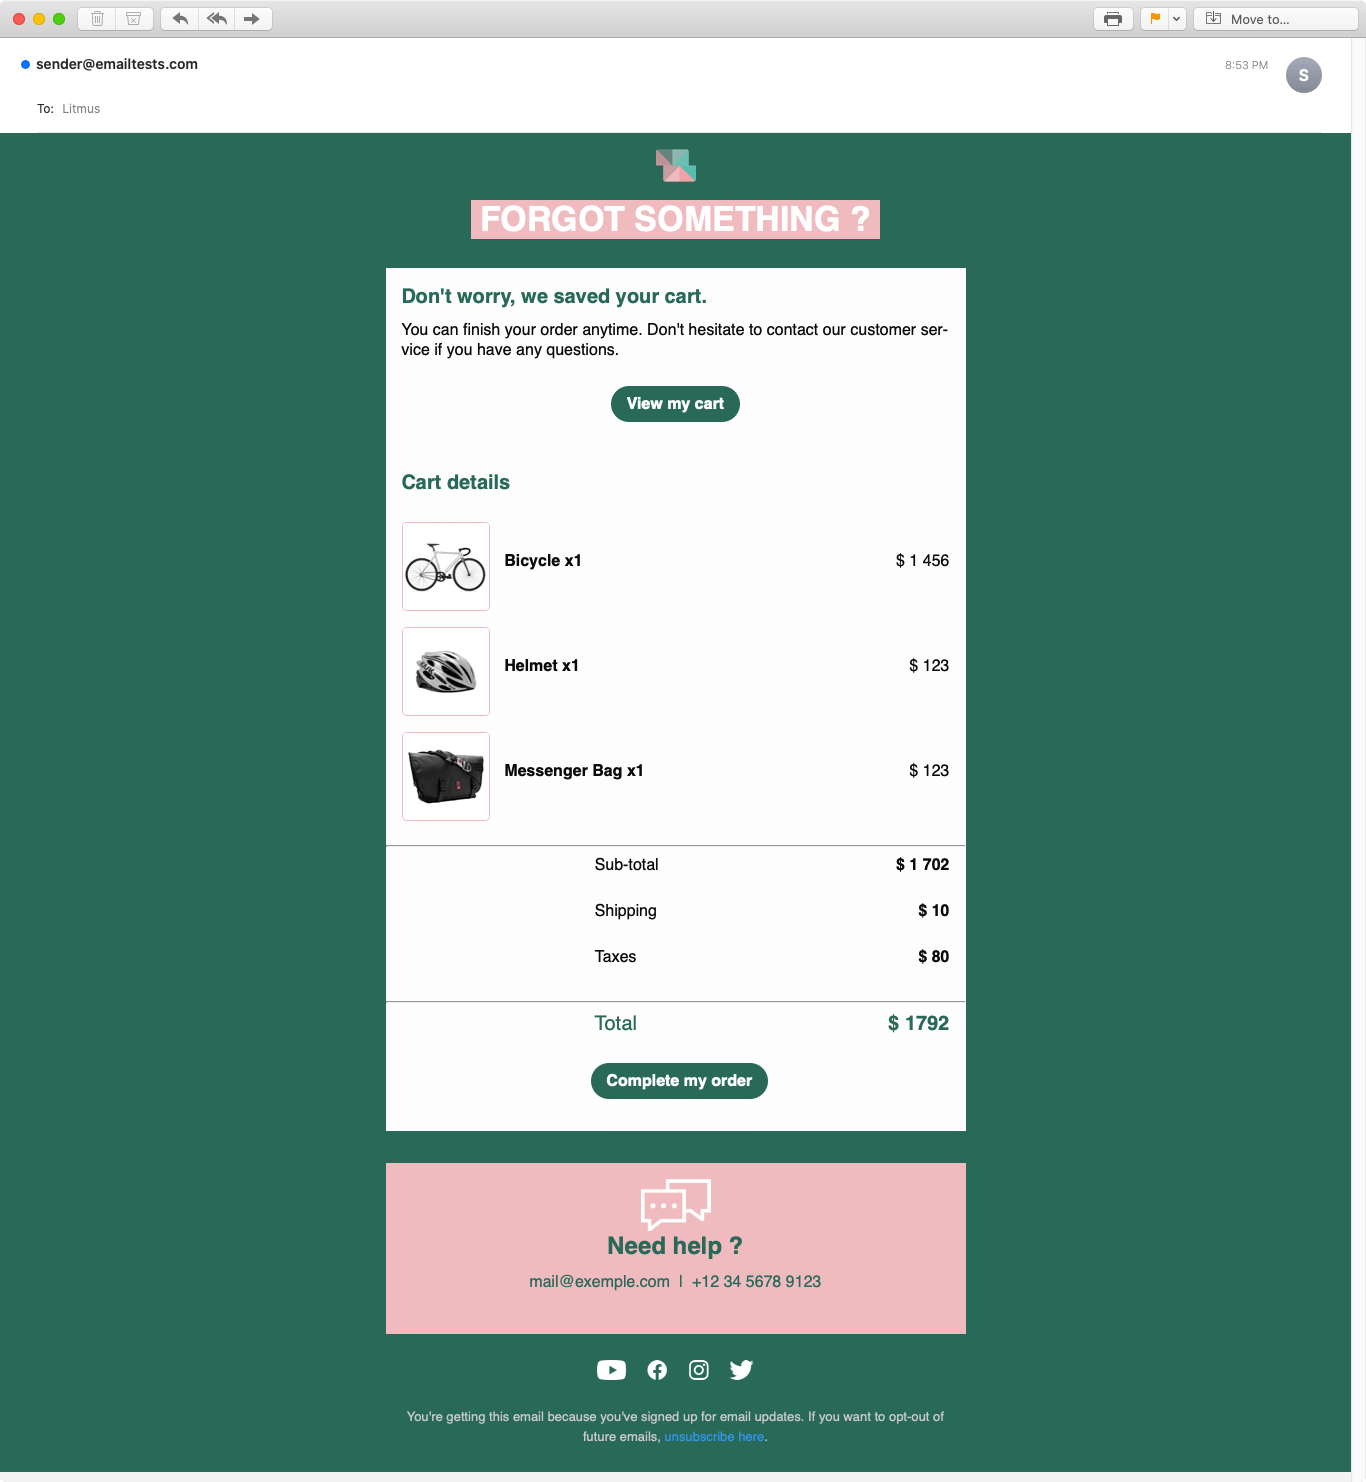 Screenshot of Squared abandoned cart email display on Apple Mail